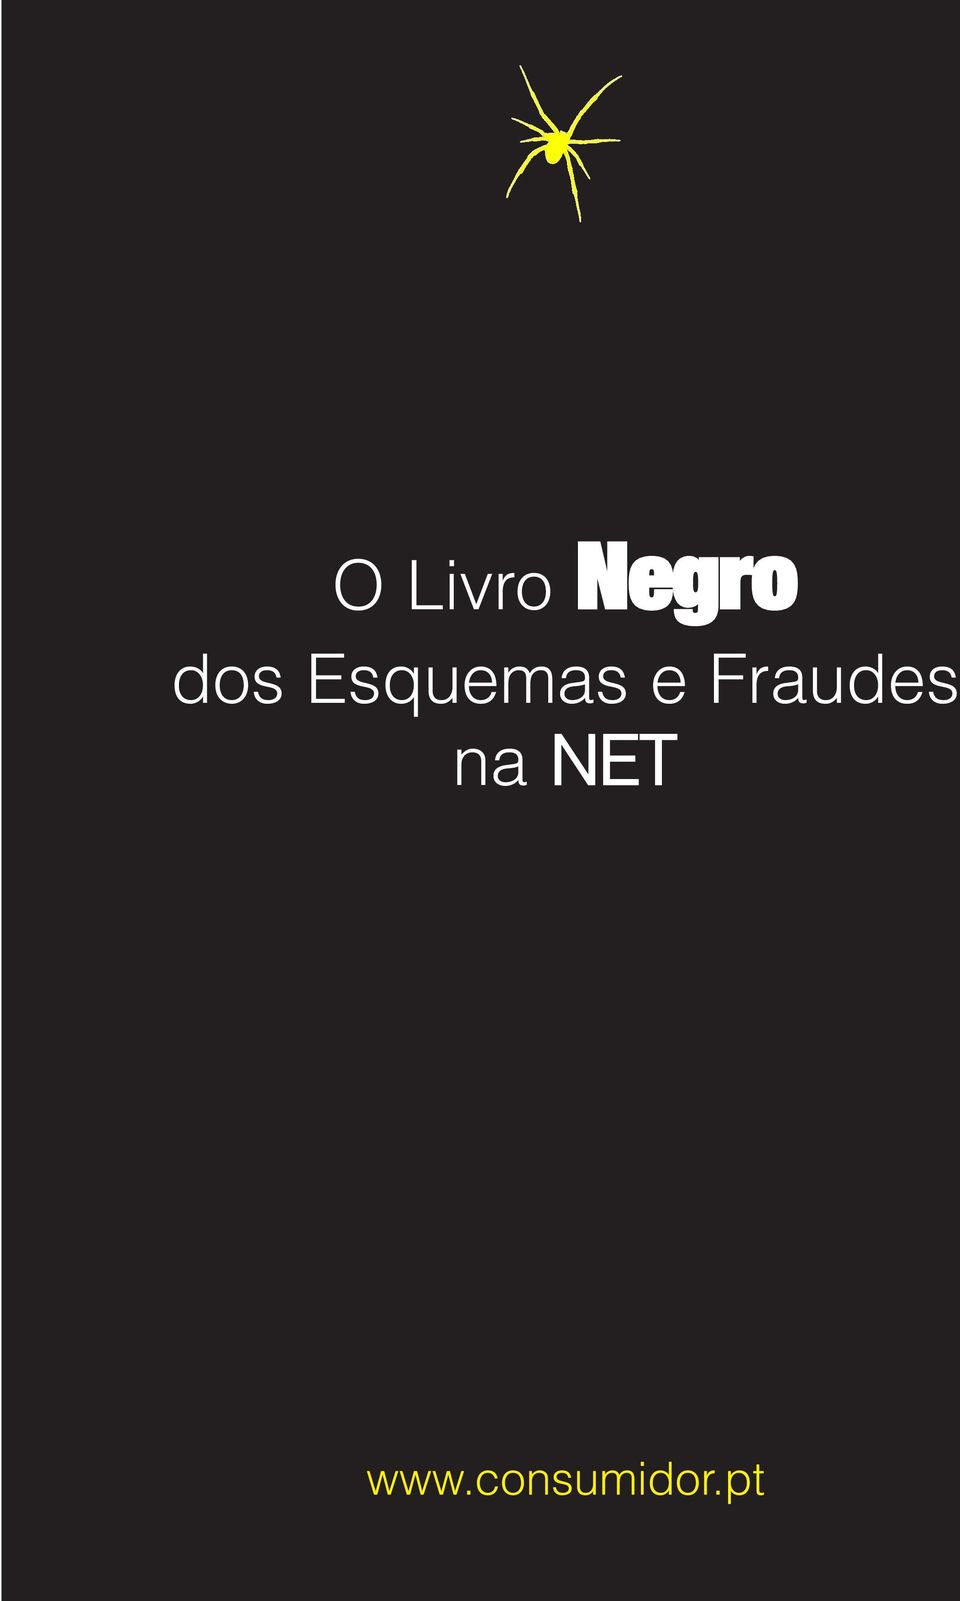 Fraudes na NET